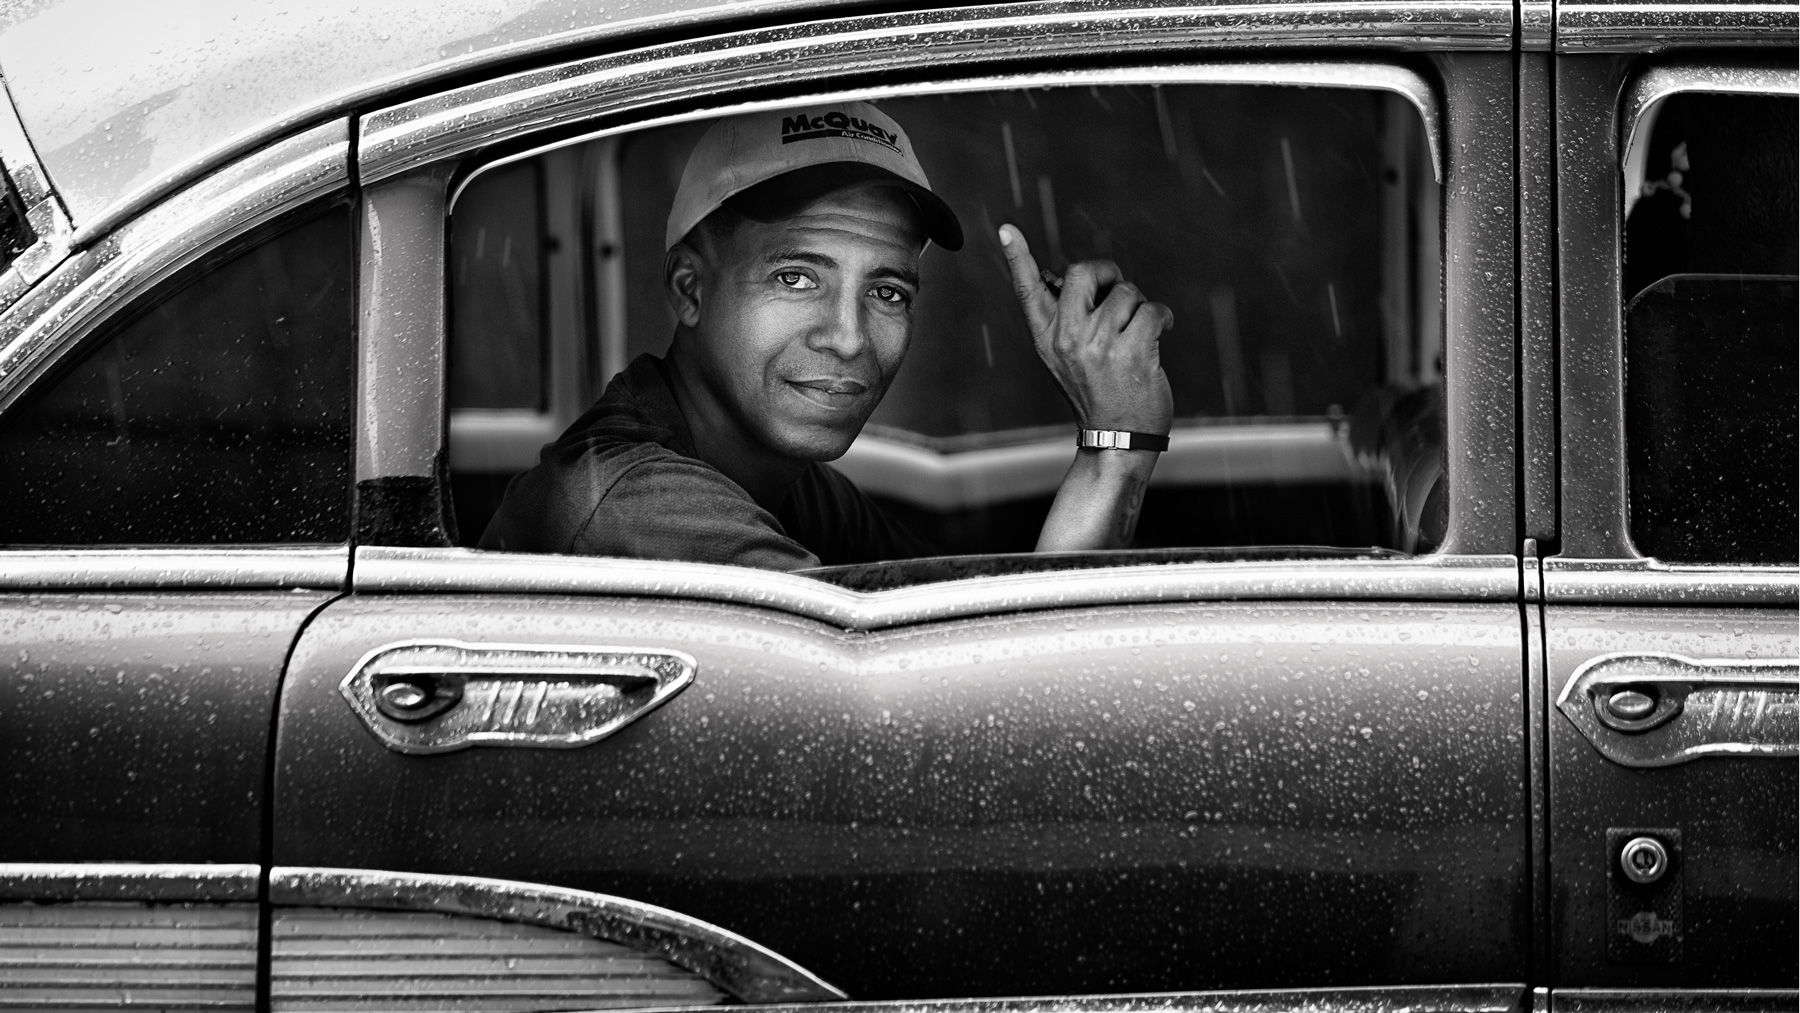 Cuba Havana - Street Photography - just spotted Obama in a cuban taxi - isn't he? Copyright © by Gerry Pacher